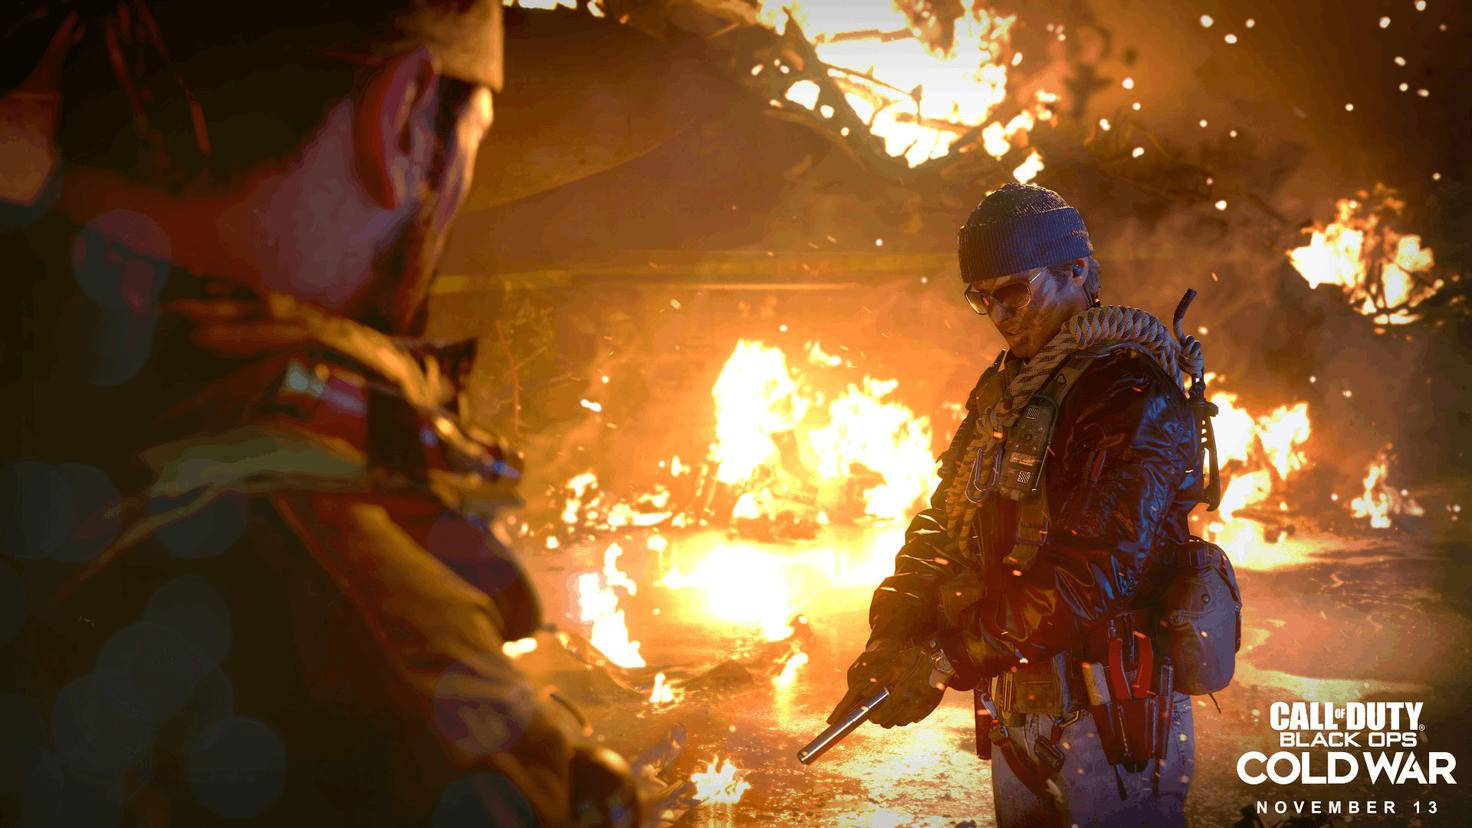 call-of-duty-black-ops-cold-war-feuer-2